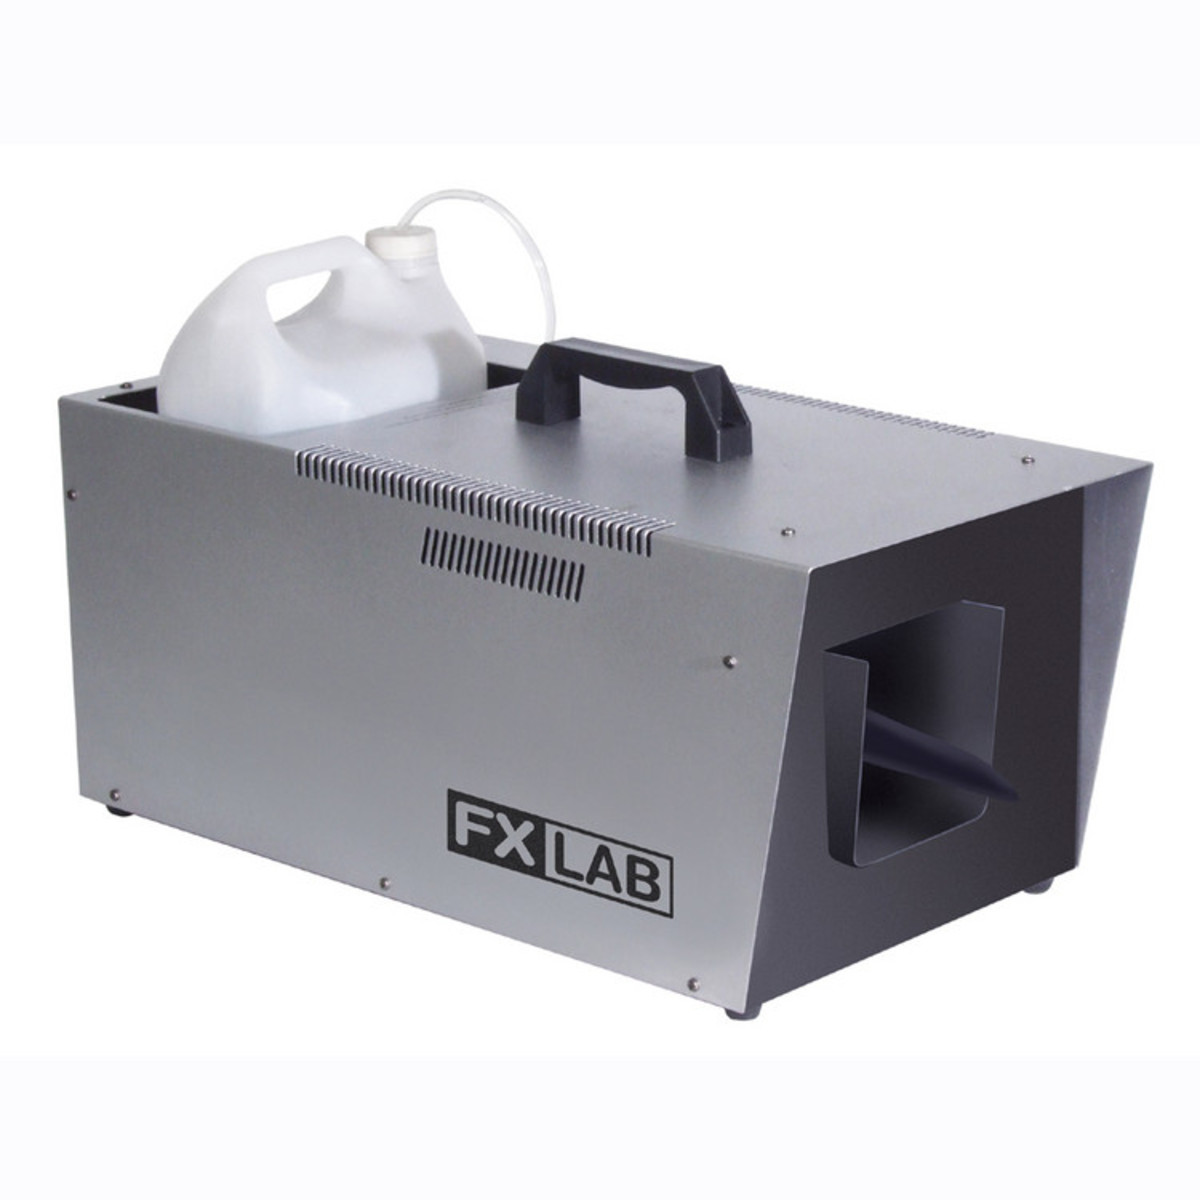 Fxlab professional artificial snow effects machine at